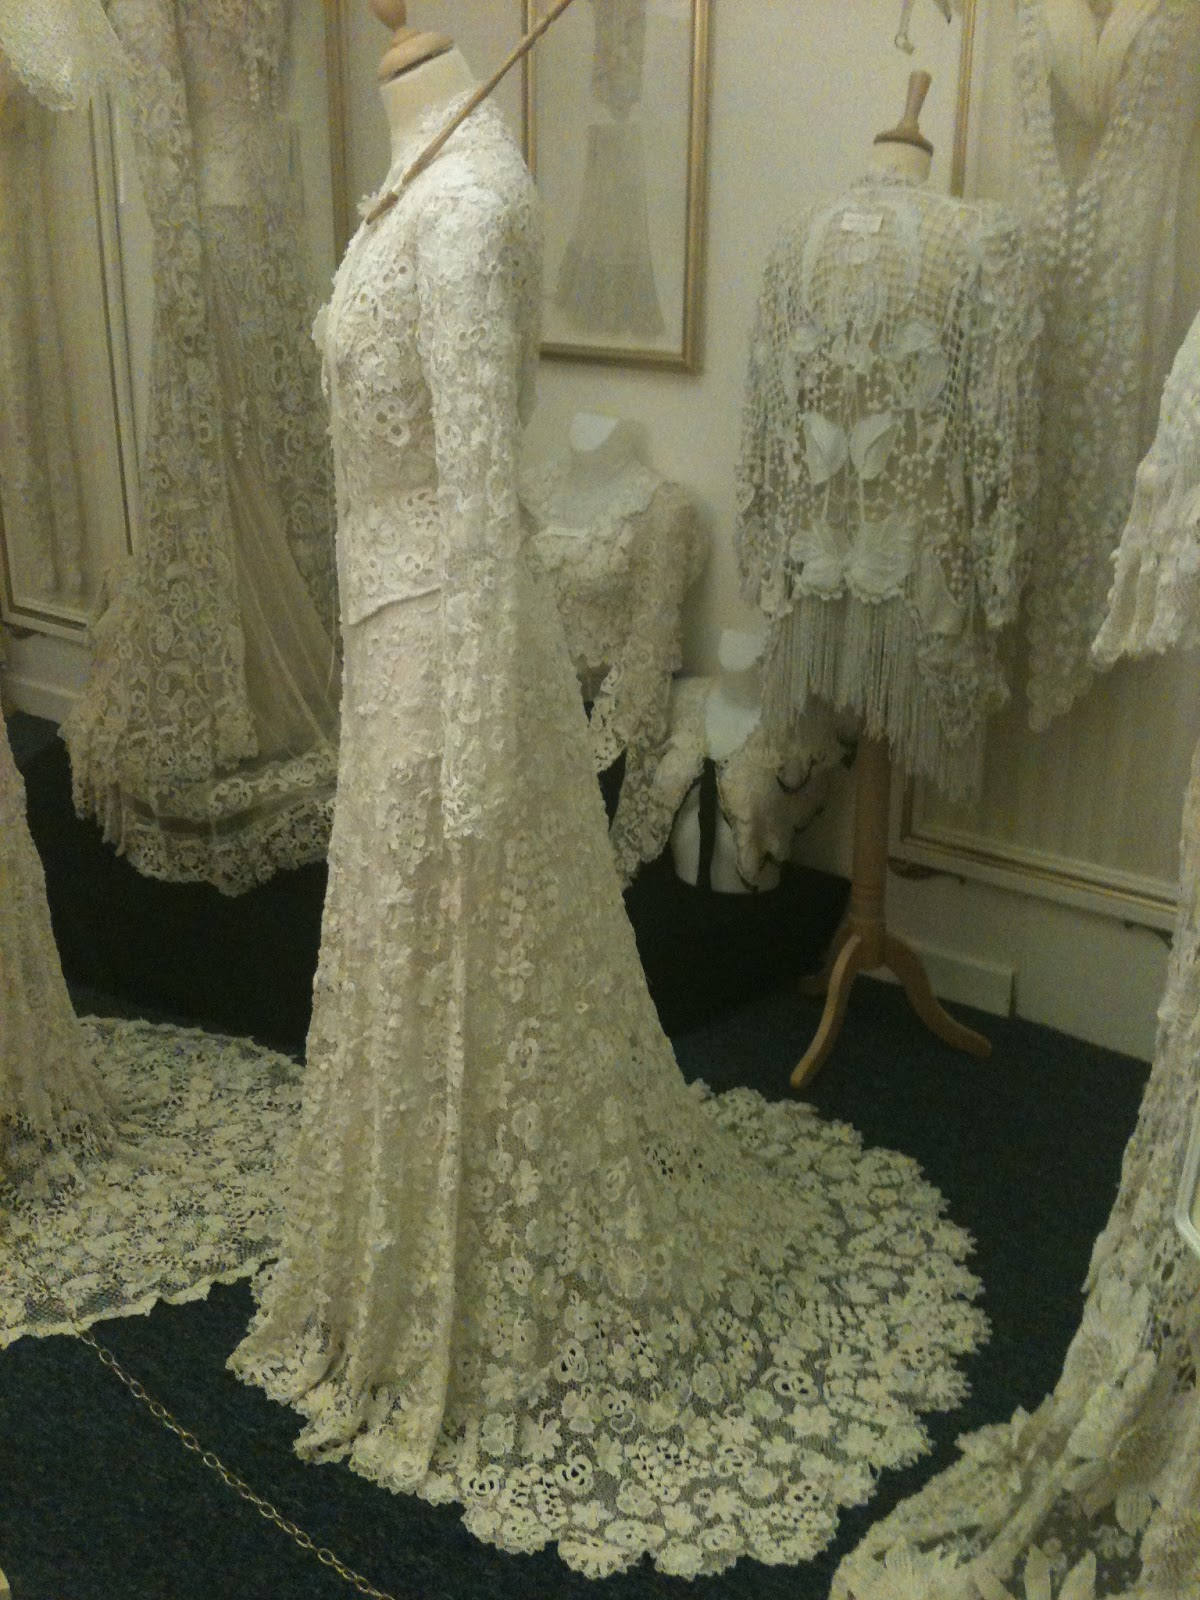 Rosemary Cathcart Antique Lace and Vintage Fashion: The Sheelin Lace ...